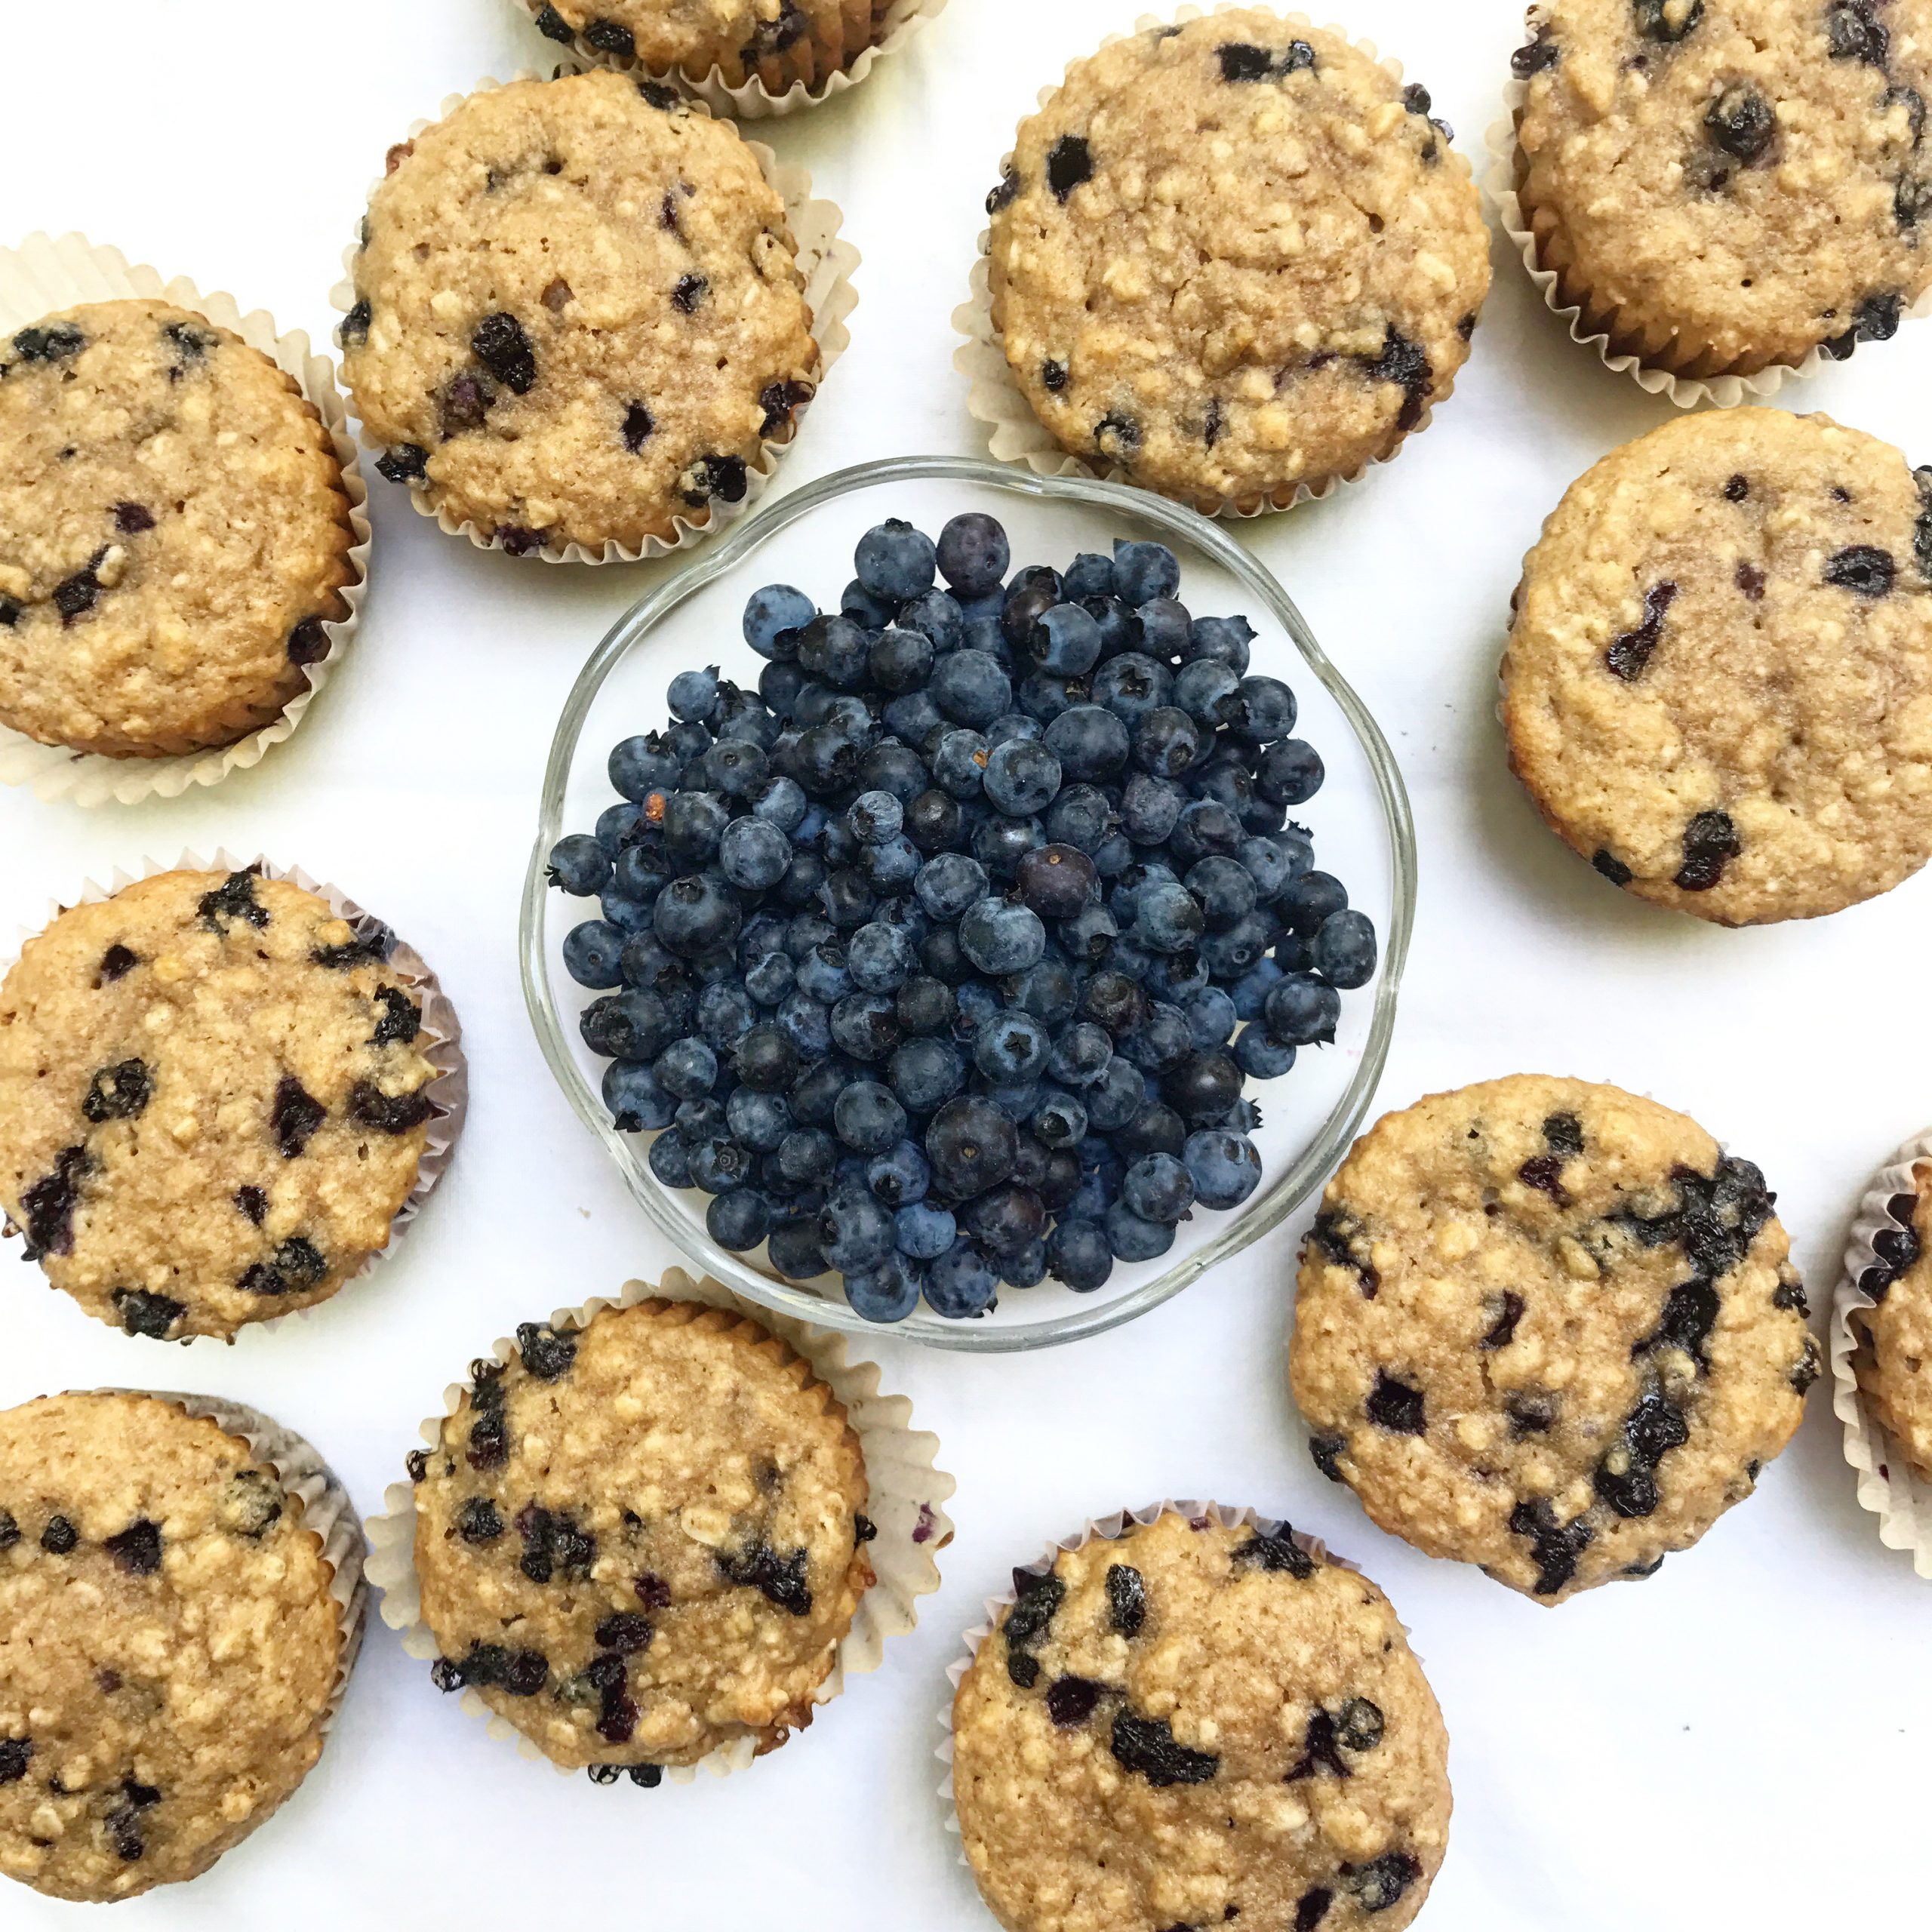 Oatmeal Blueberry Applesauce Muffins and a bowl of blueberries